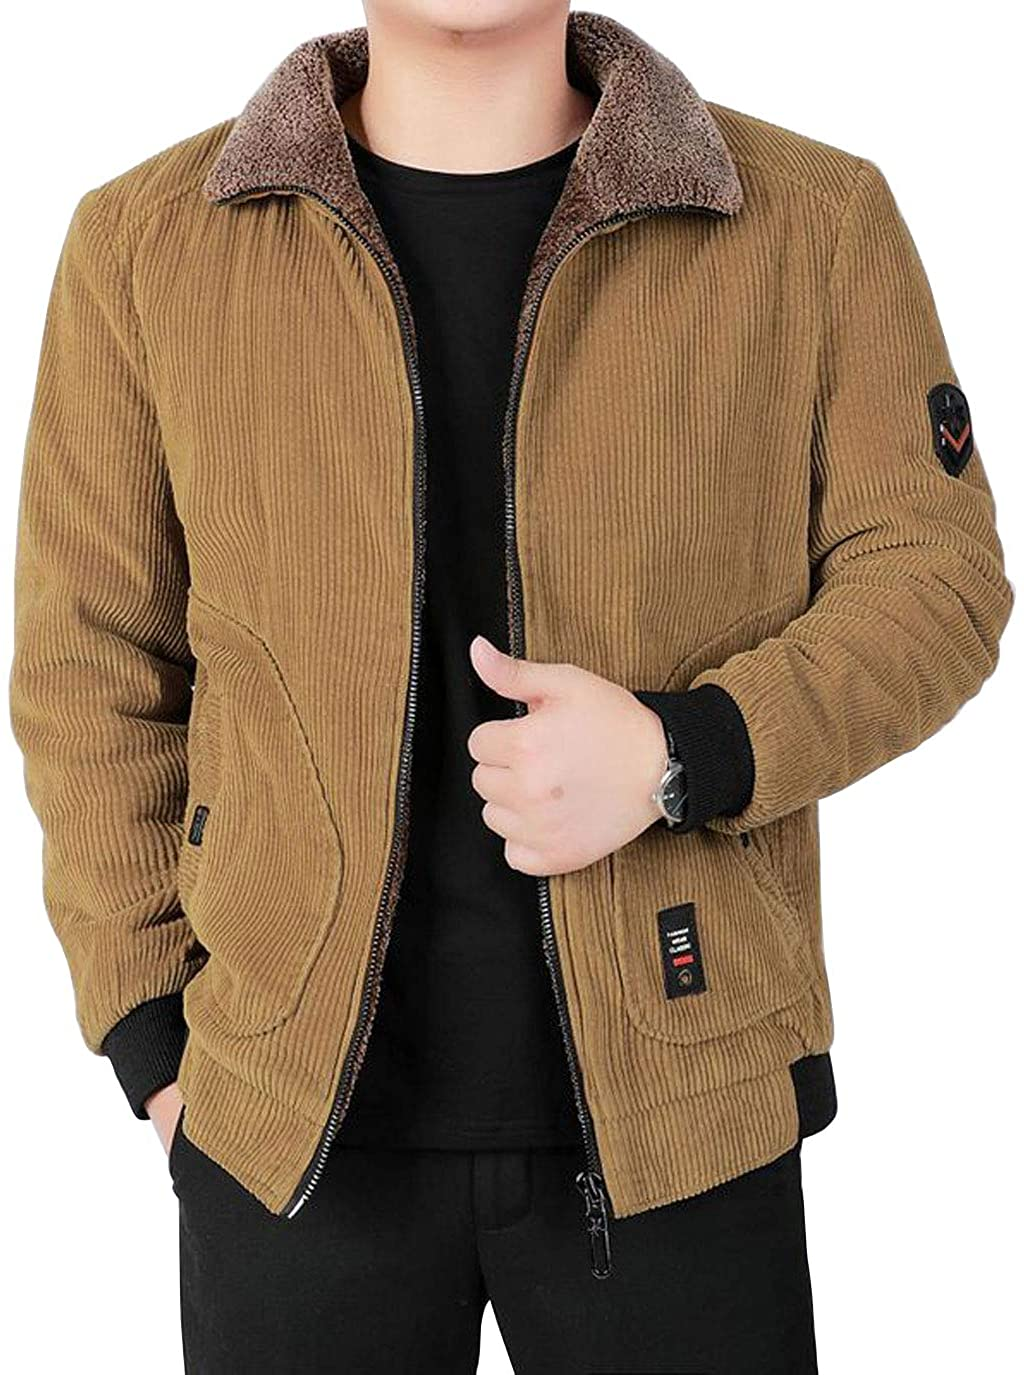 ebossy Men's Winter Fur Collar Full Zip Thicken Quilted Lined Corduroy Bomber Jacket